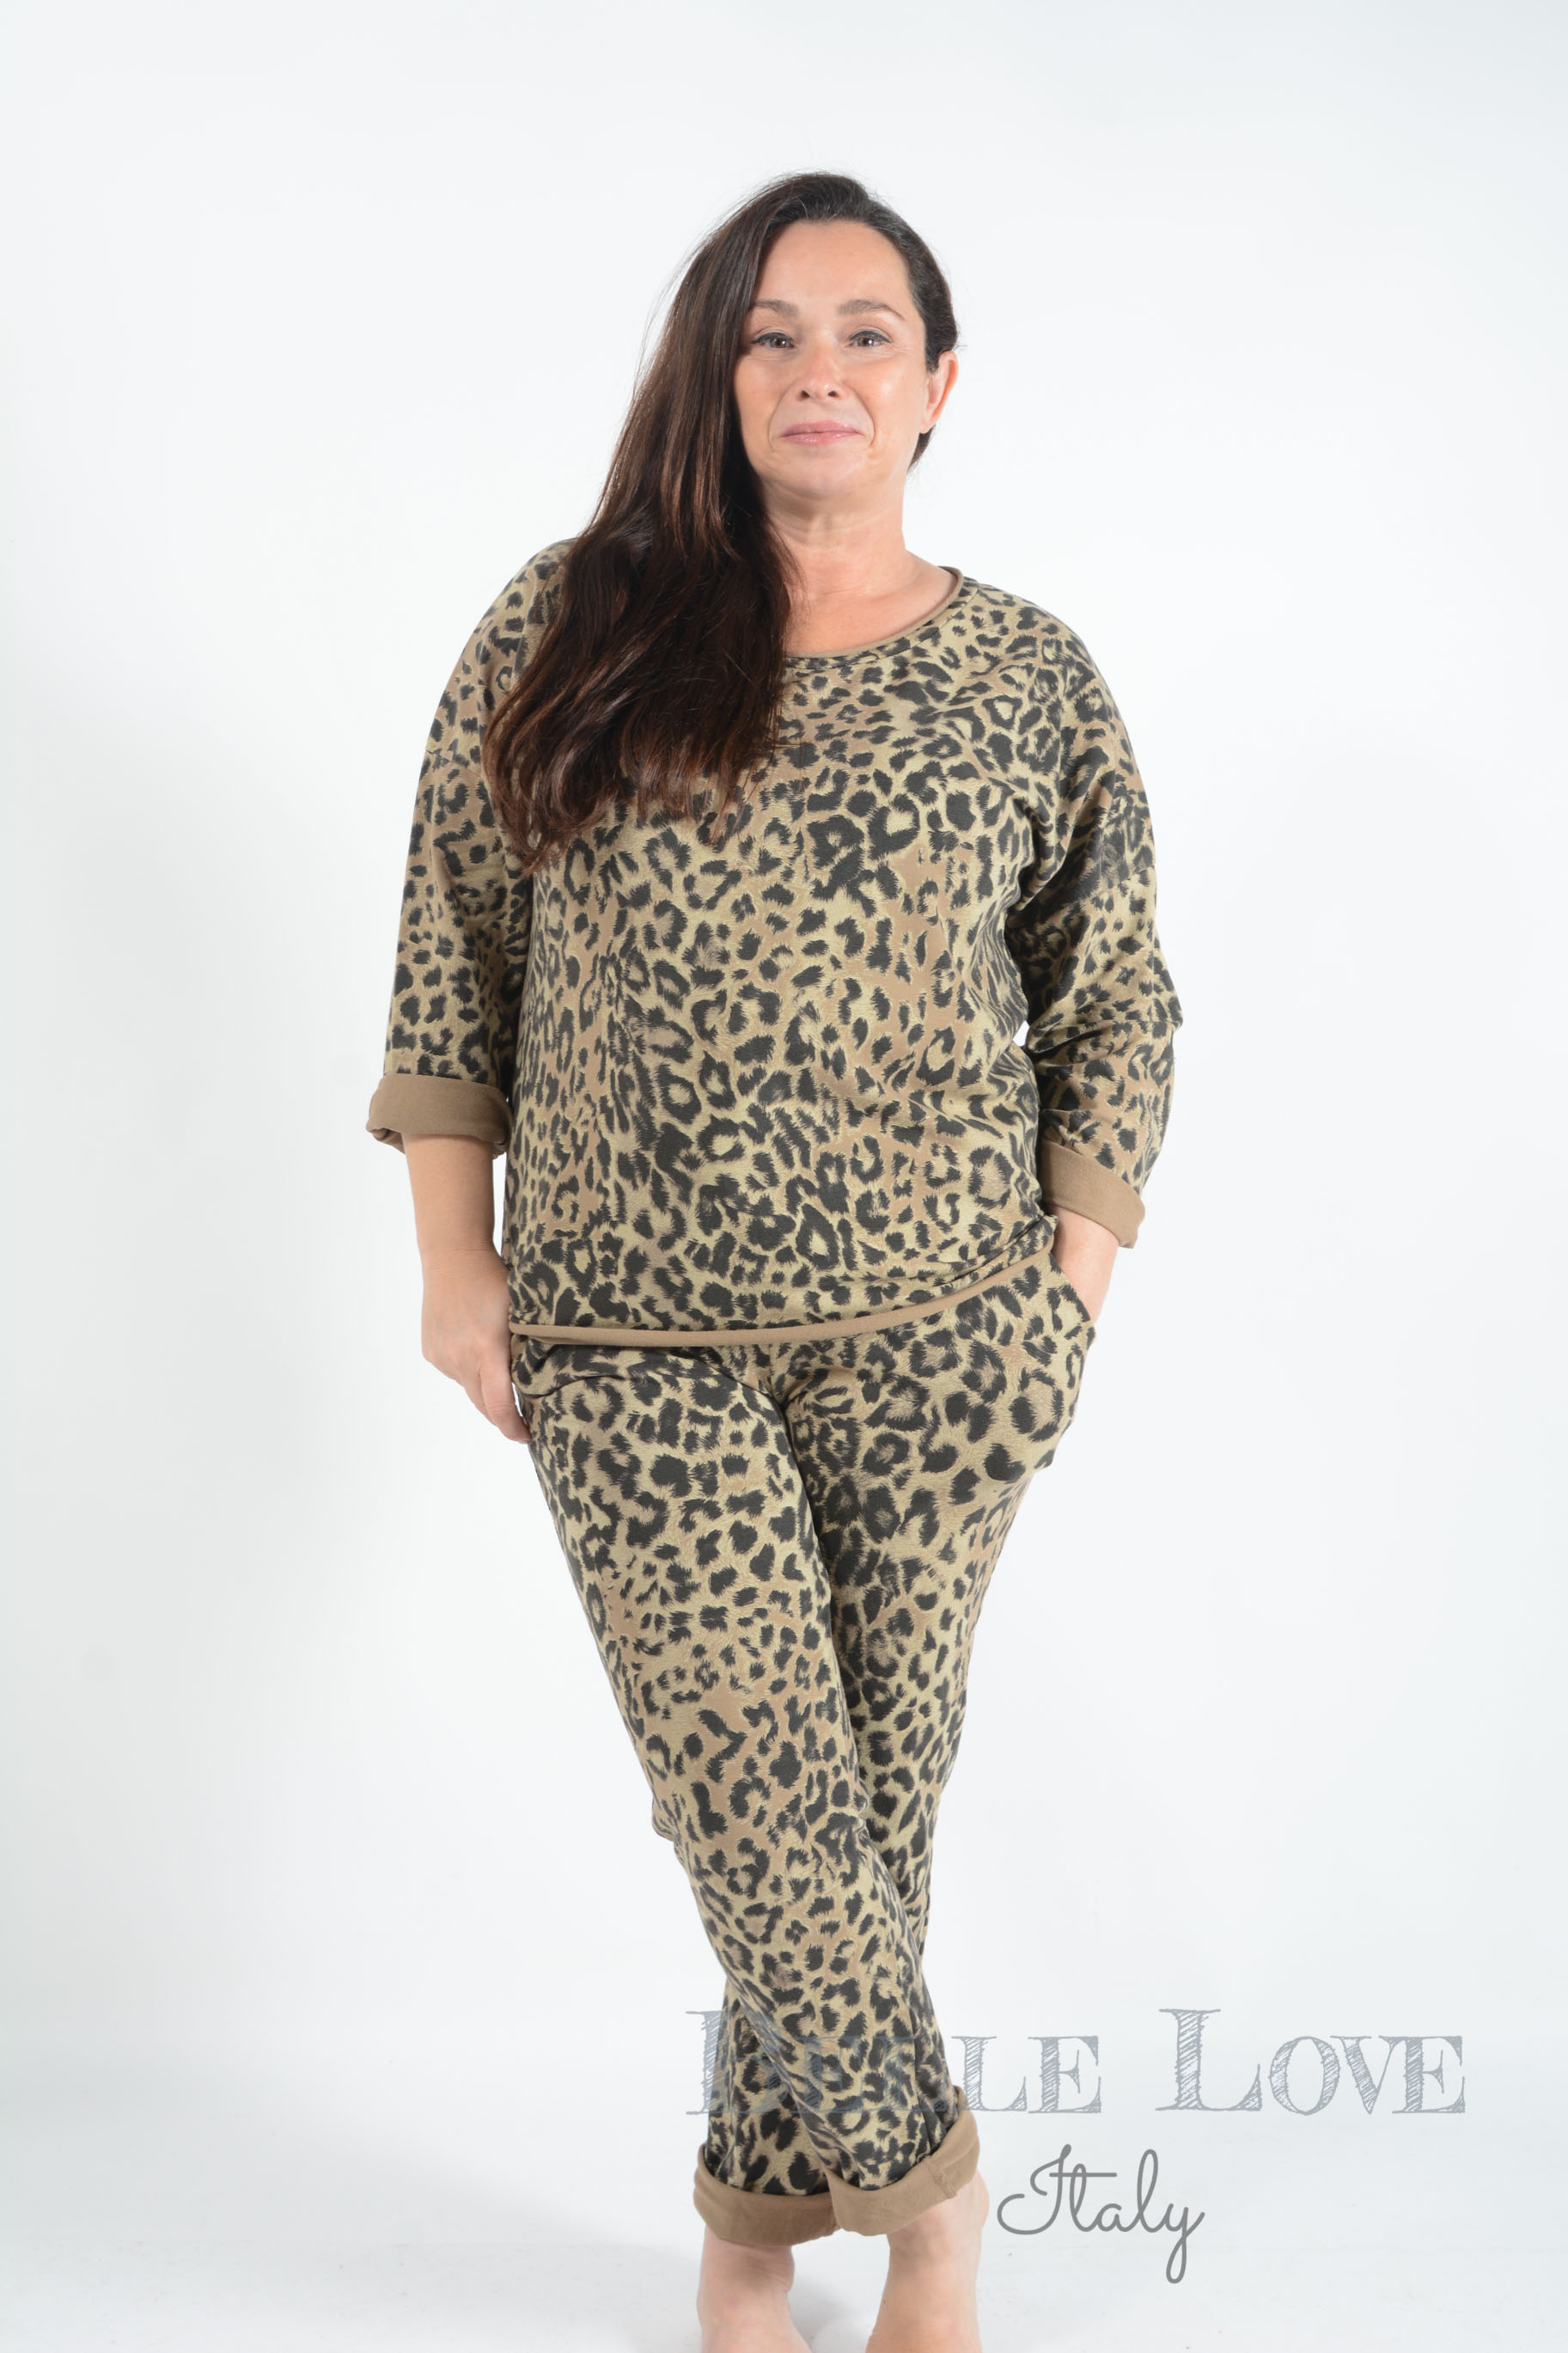 Belle Love Italy Leopard Print Loungewear Set